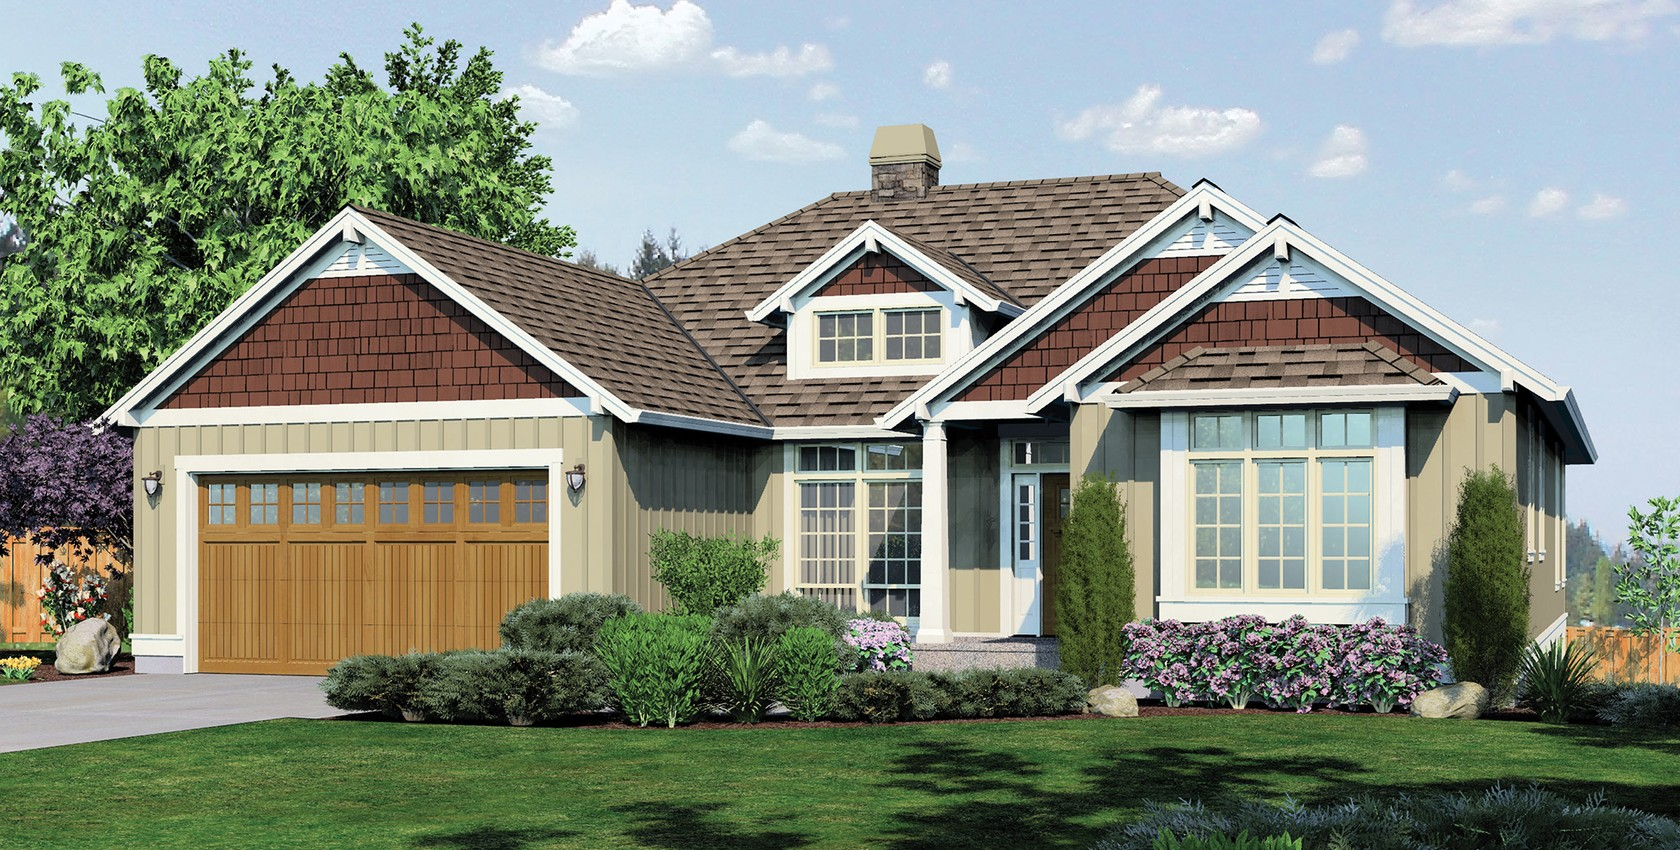 Mascord house plan 1236 the linden for Mascord plans